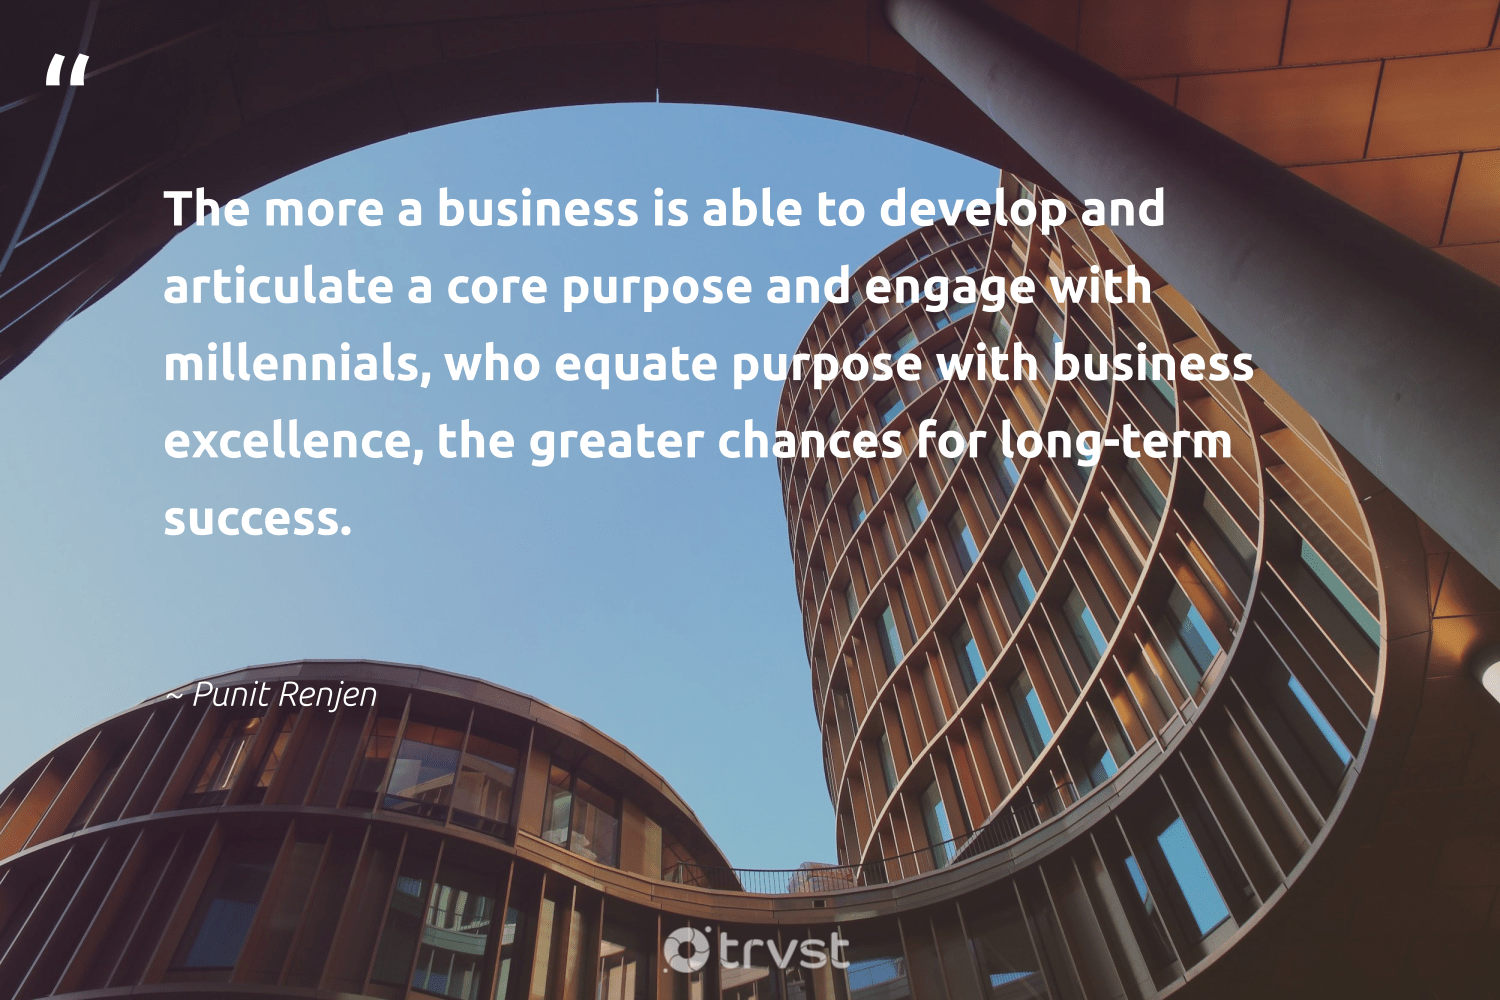 """""""The more a business is able to develop and articulate a core purpose and engage with millennials, who equate purpose with business excellence, the greater chances for long-term success.""""  - Punit Renjen #trvst #quotes #purpose #success #findingpupose #futurebusiness #begreat #gogreen #purposedriven #socialchange #togetherwecan #ecoconscious"""